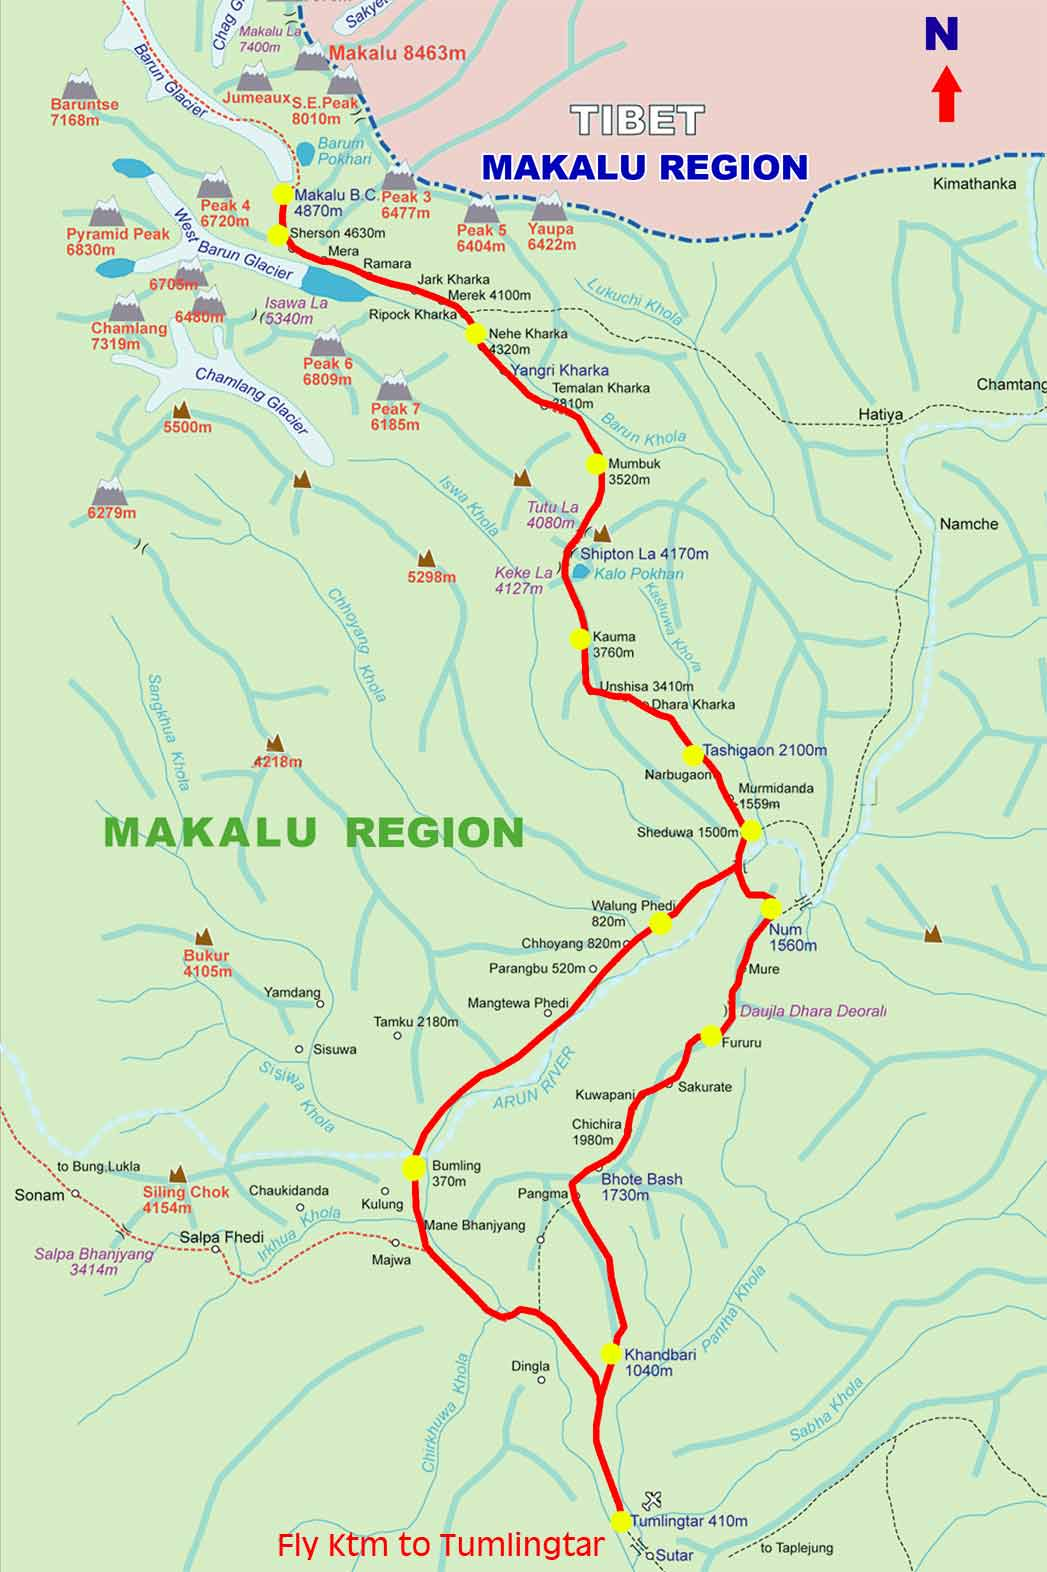 MT. MAKALU EXPEDITION (8463M) Map